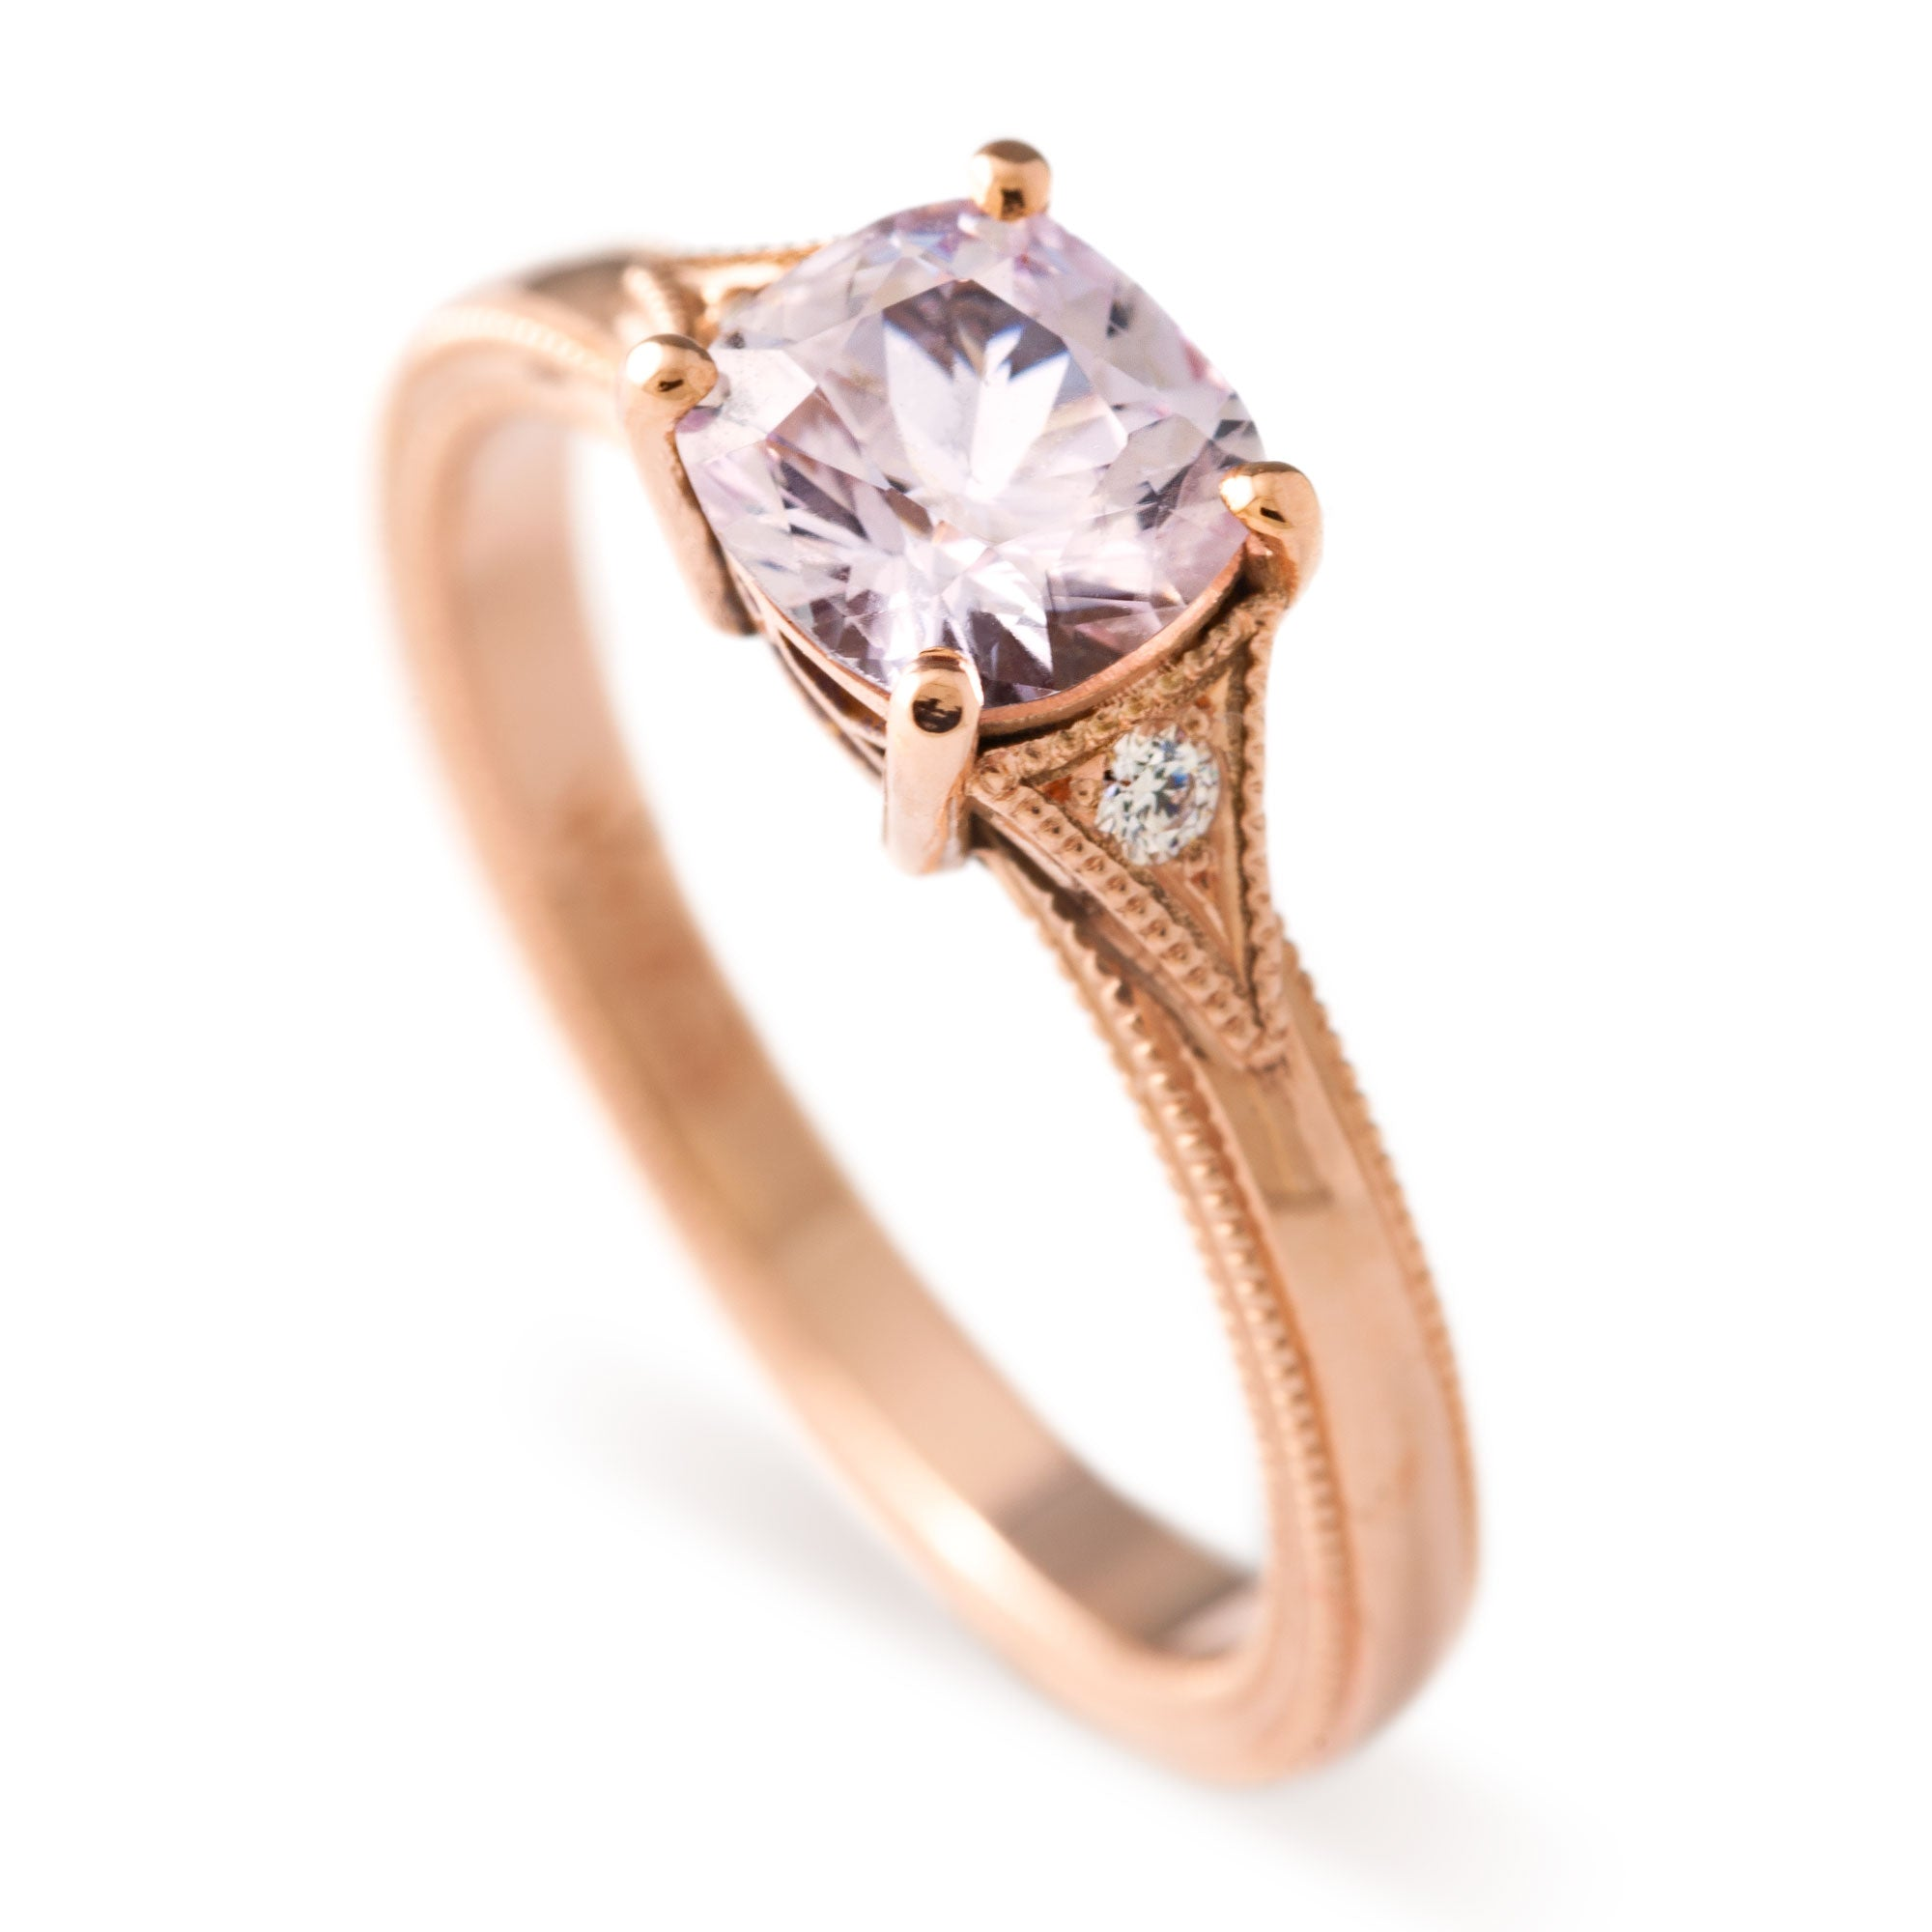 Cleo Sapphire Engagement Ring - Era Design Vancouver